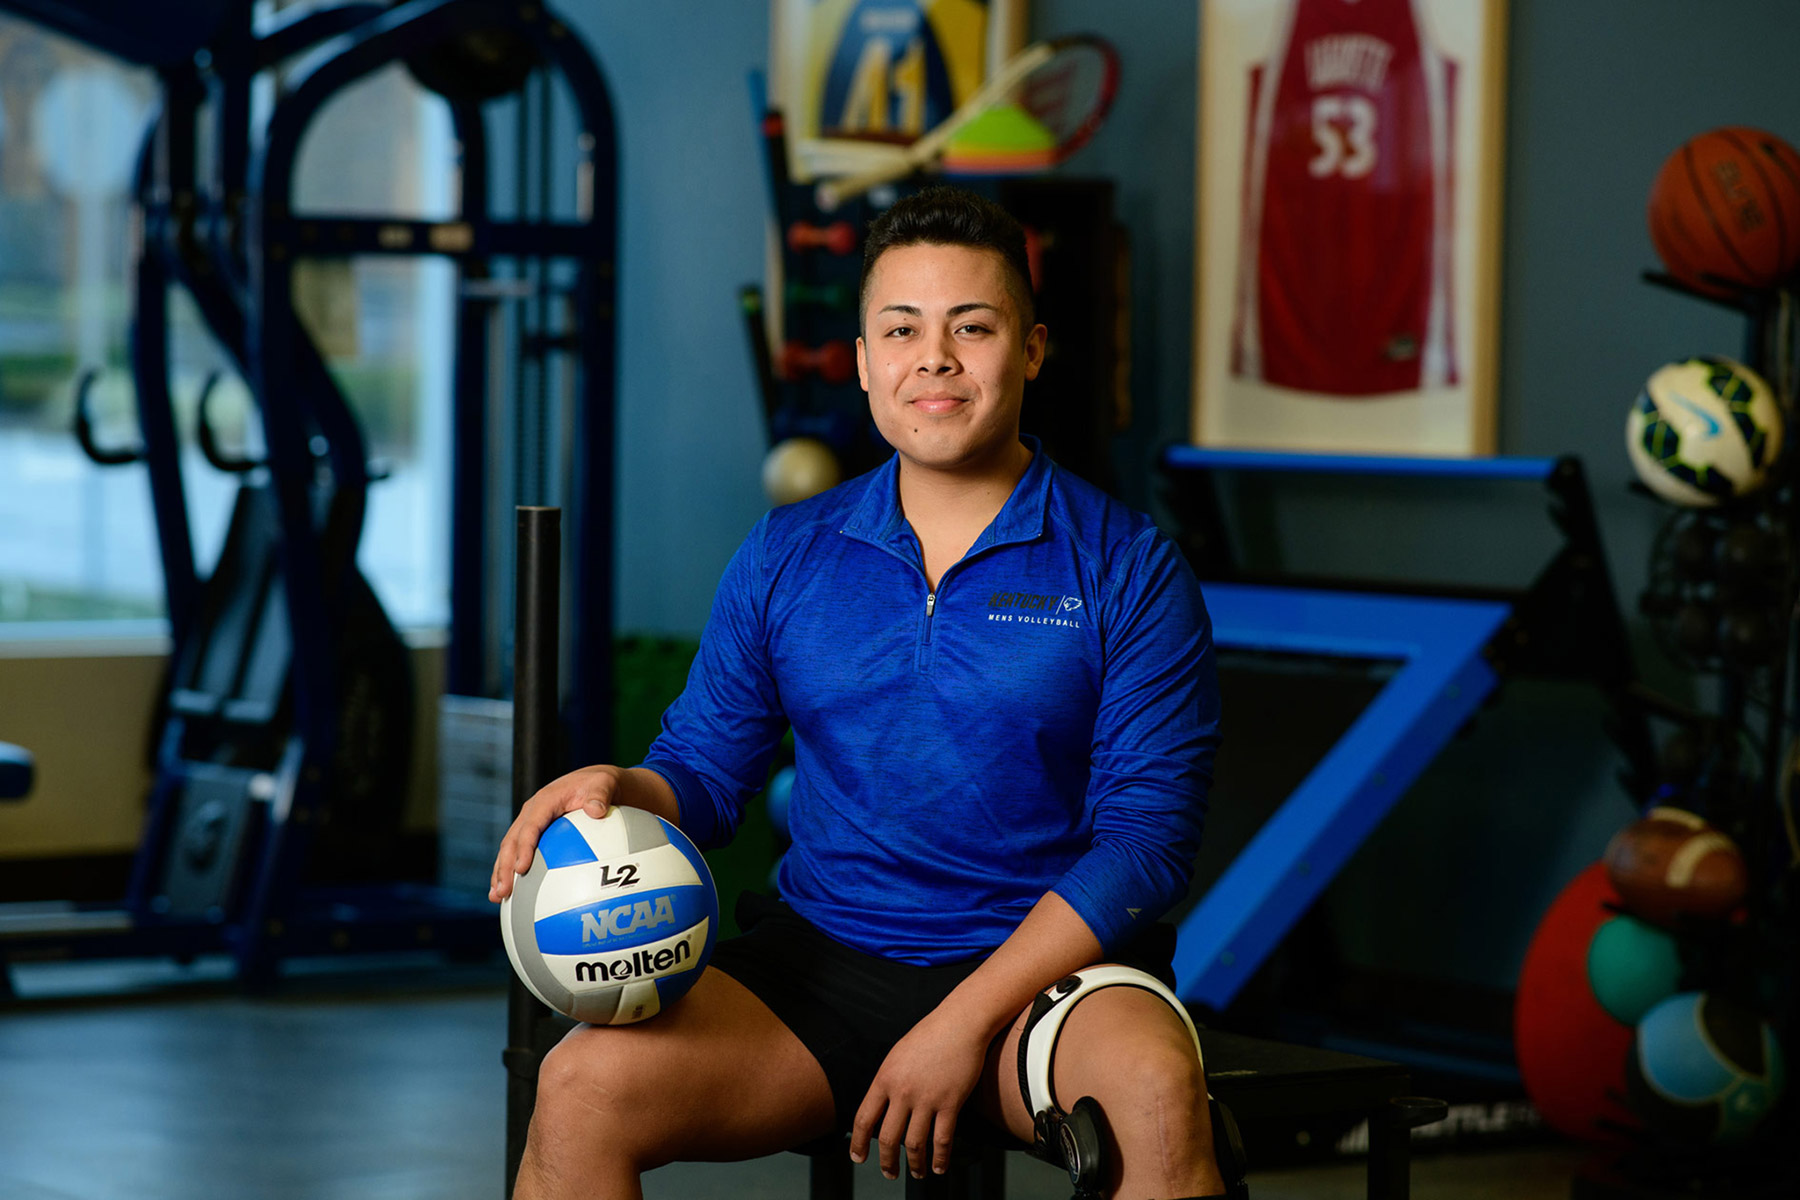 Gil Bagang sits on a bench at his physical therapist's office with a volleyball resting on his knee.